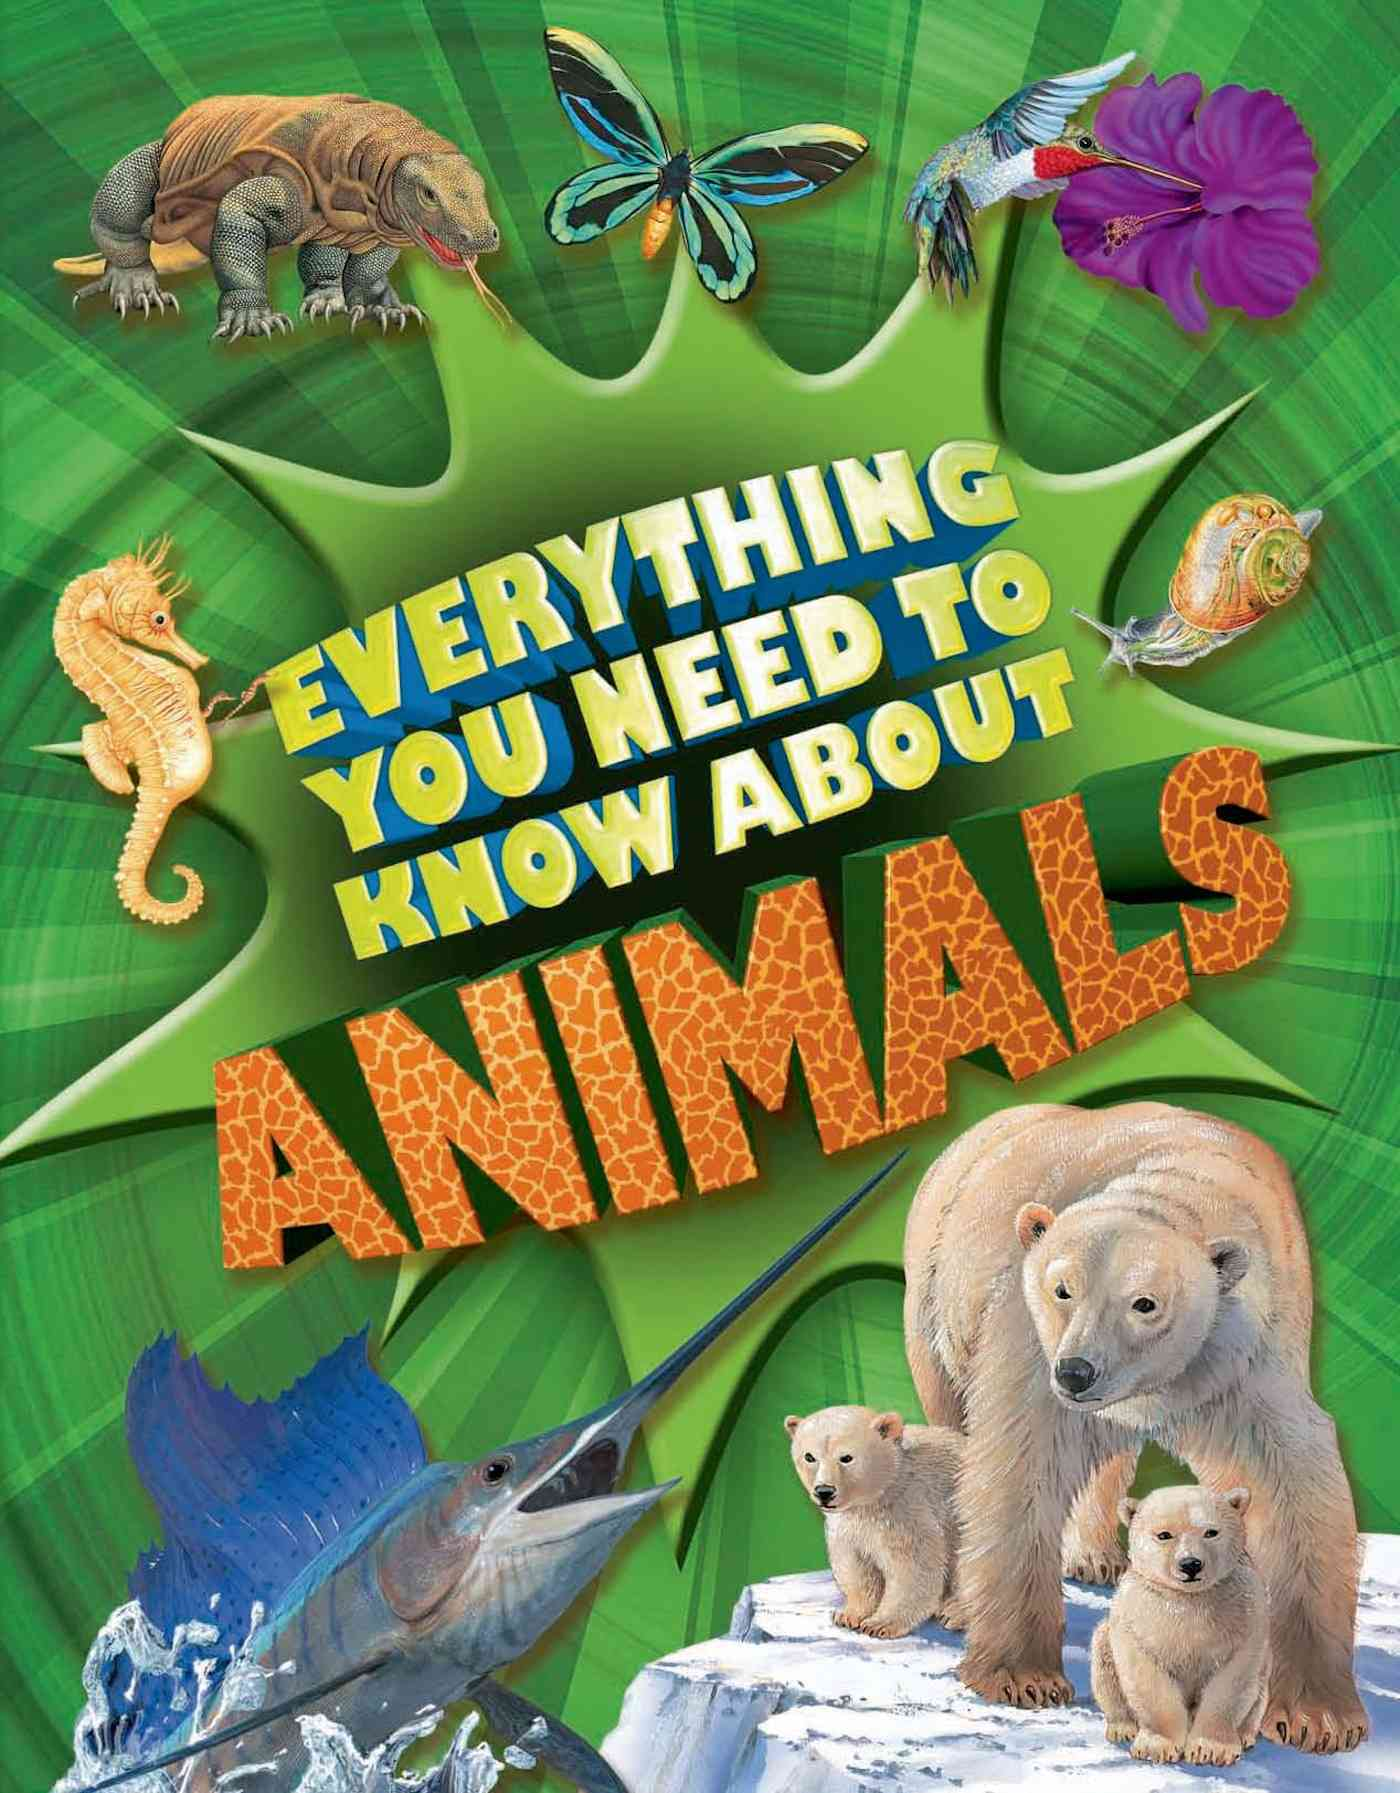 Everything You Need to Know About Animals By Davies, Nicola